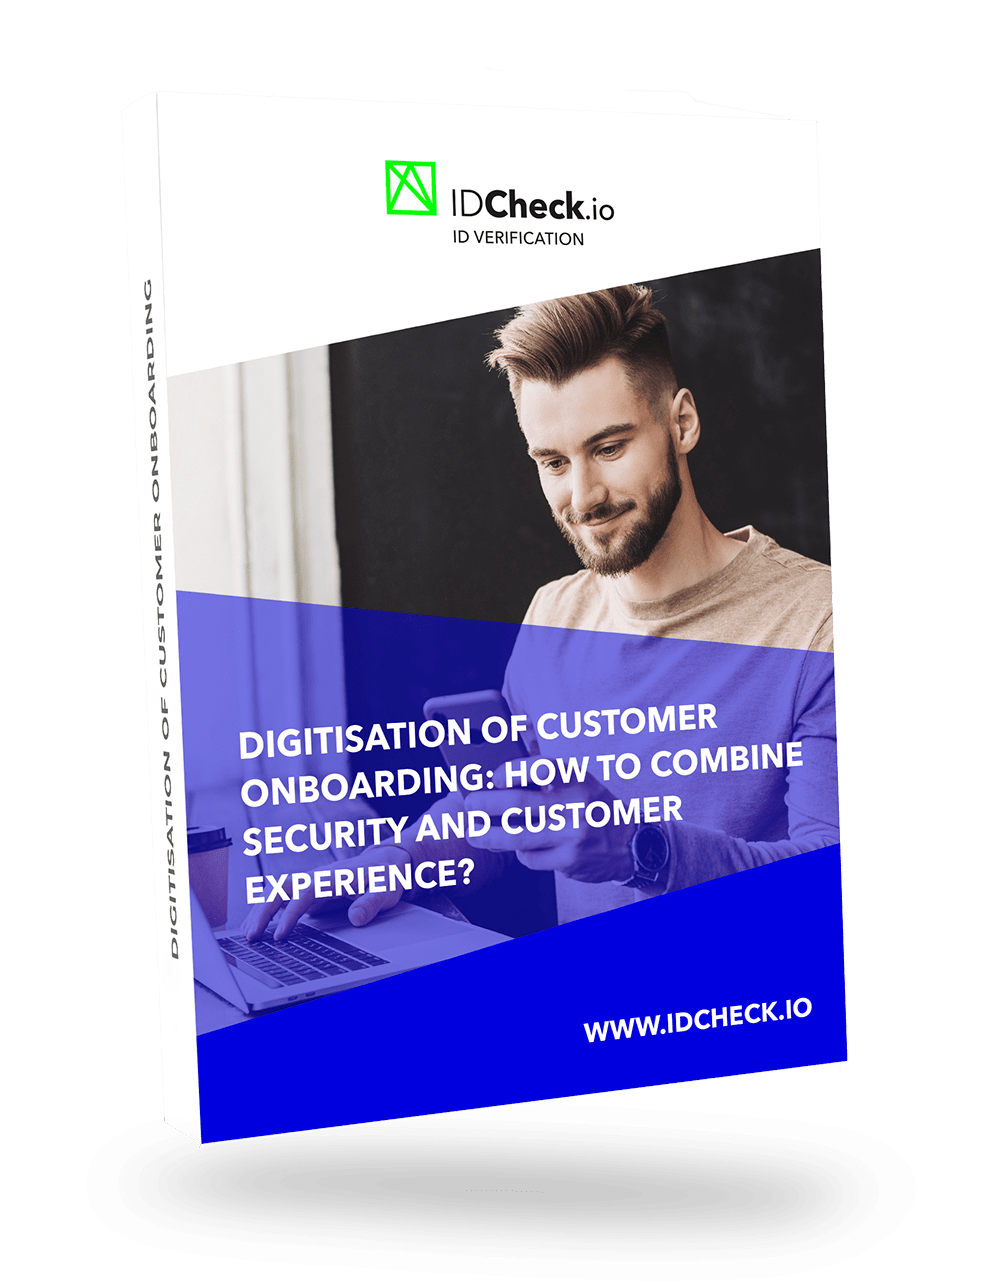 Digitisation of customer onboarding